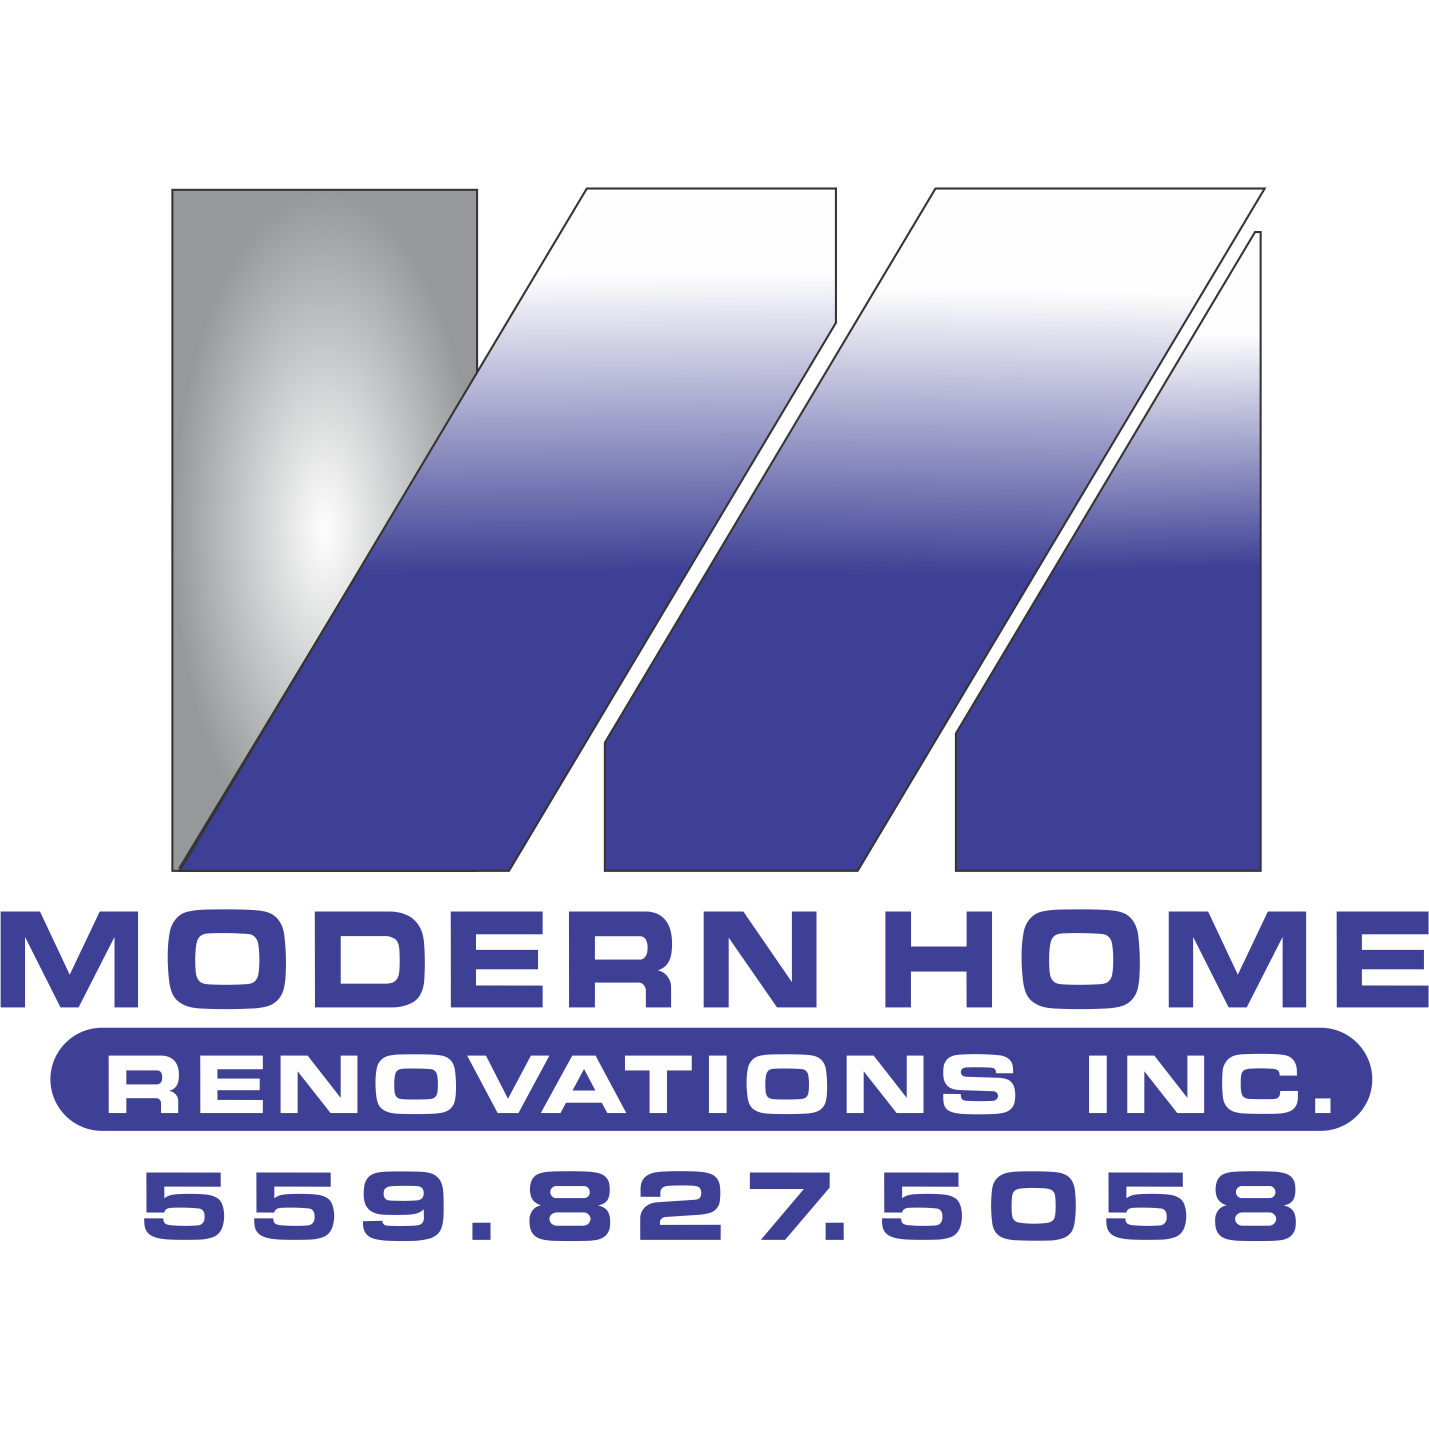 MODERN HOME RENOVATIONS INC